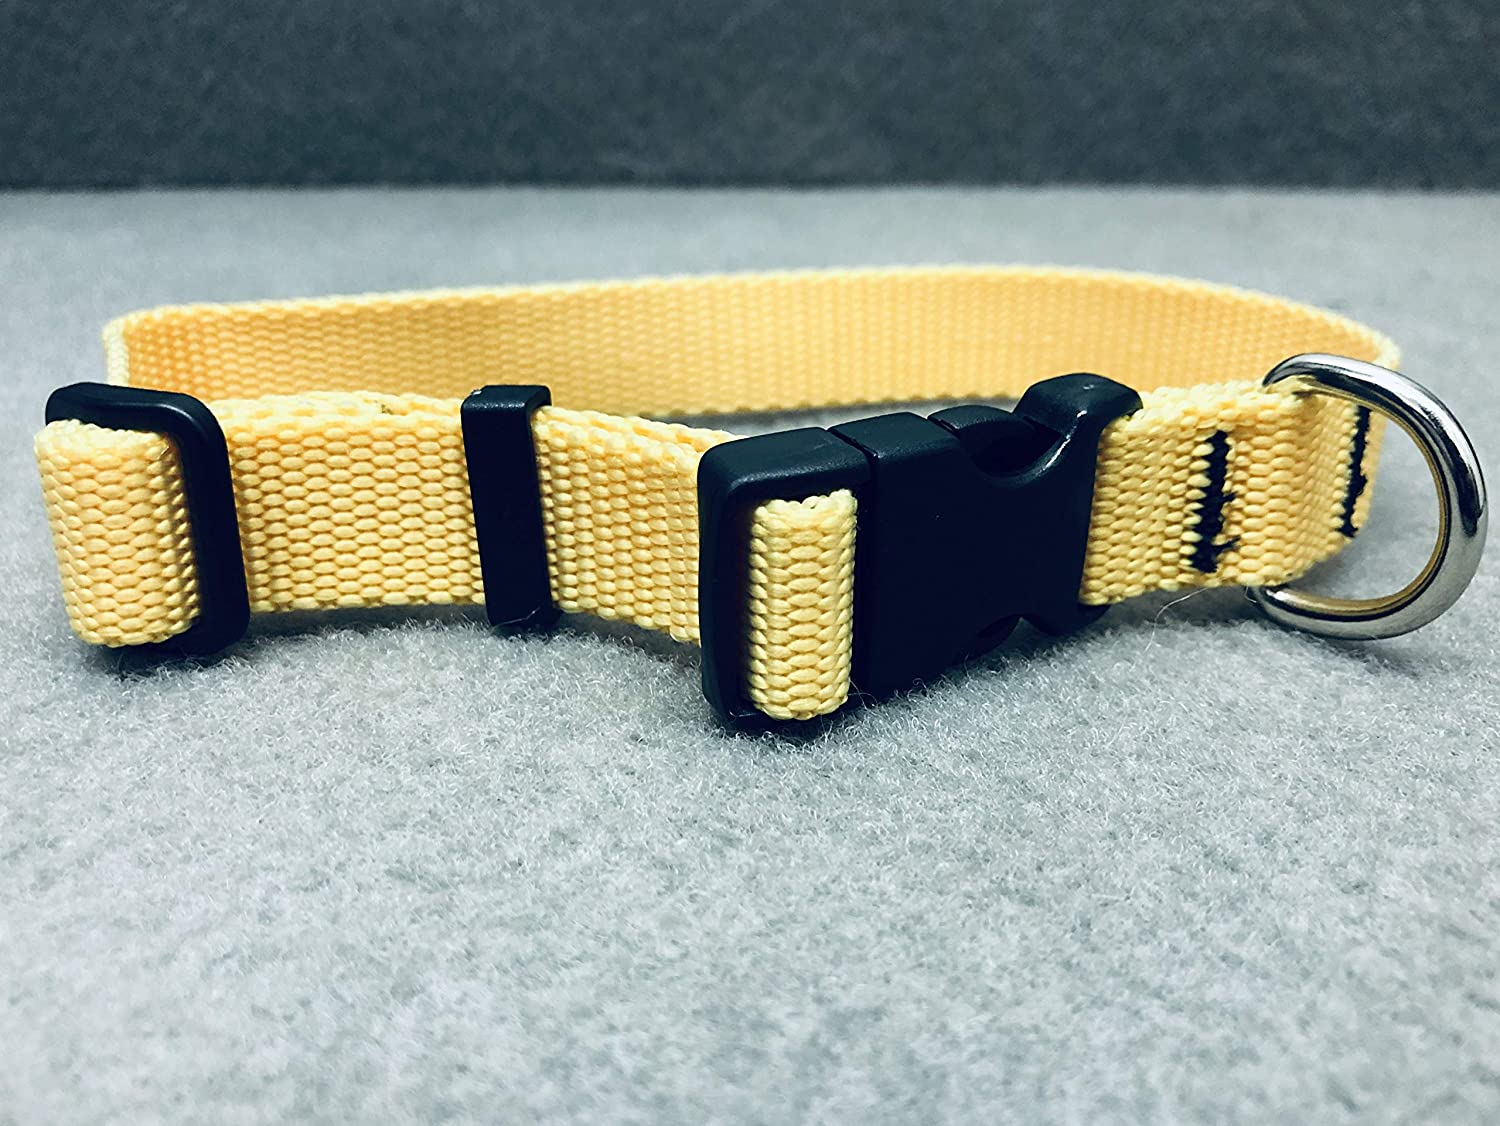 Fabri-Tech, Inc. Classic Adjustable Dog Collar, Small, Neck 10-16